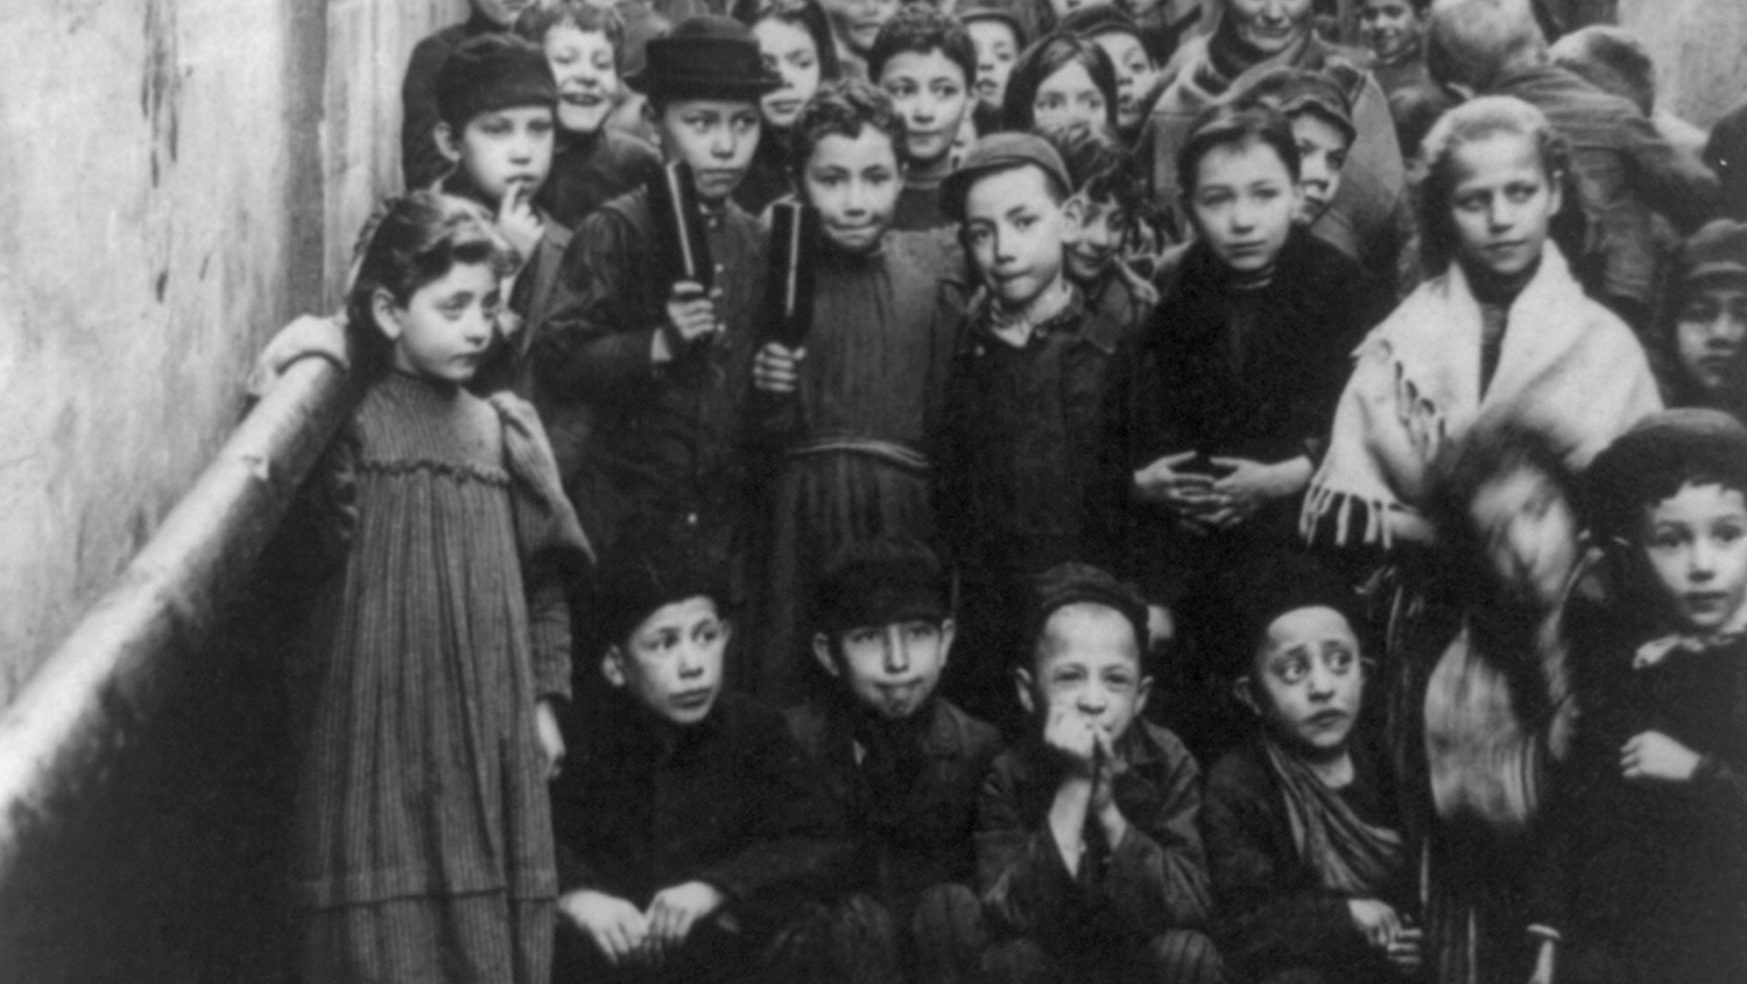 Jewish children in the streets of Warsaw, in an image from 1897. Credit: Universal History Archive/UIG via Getty